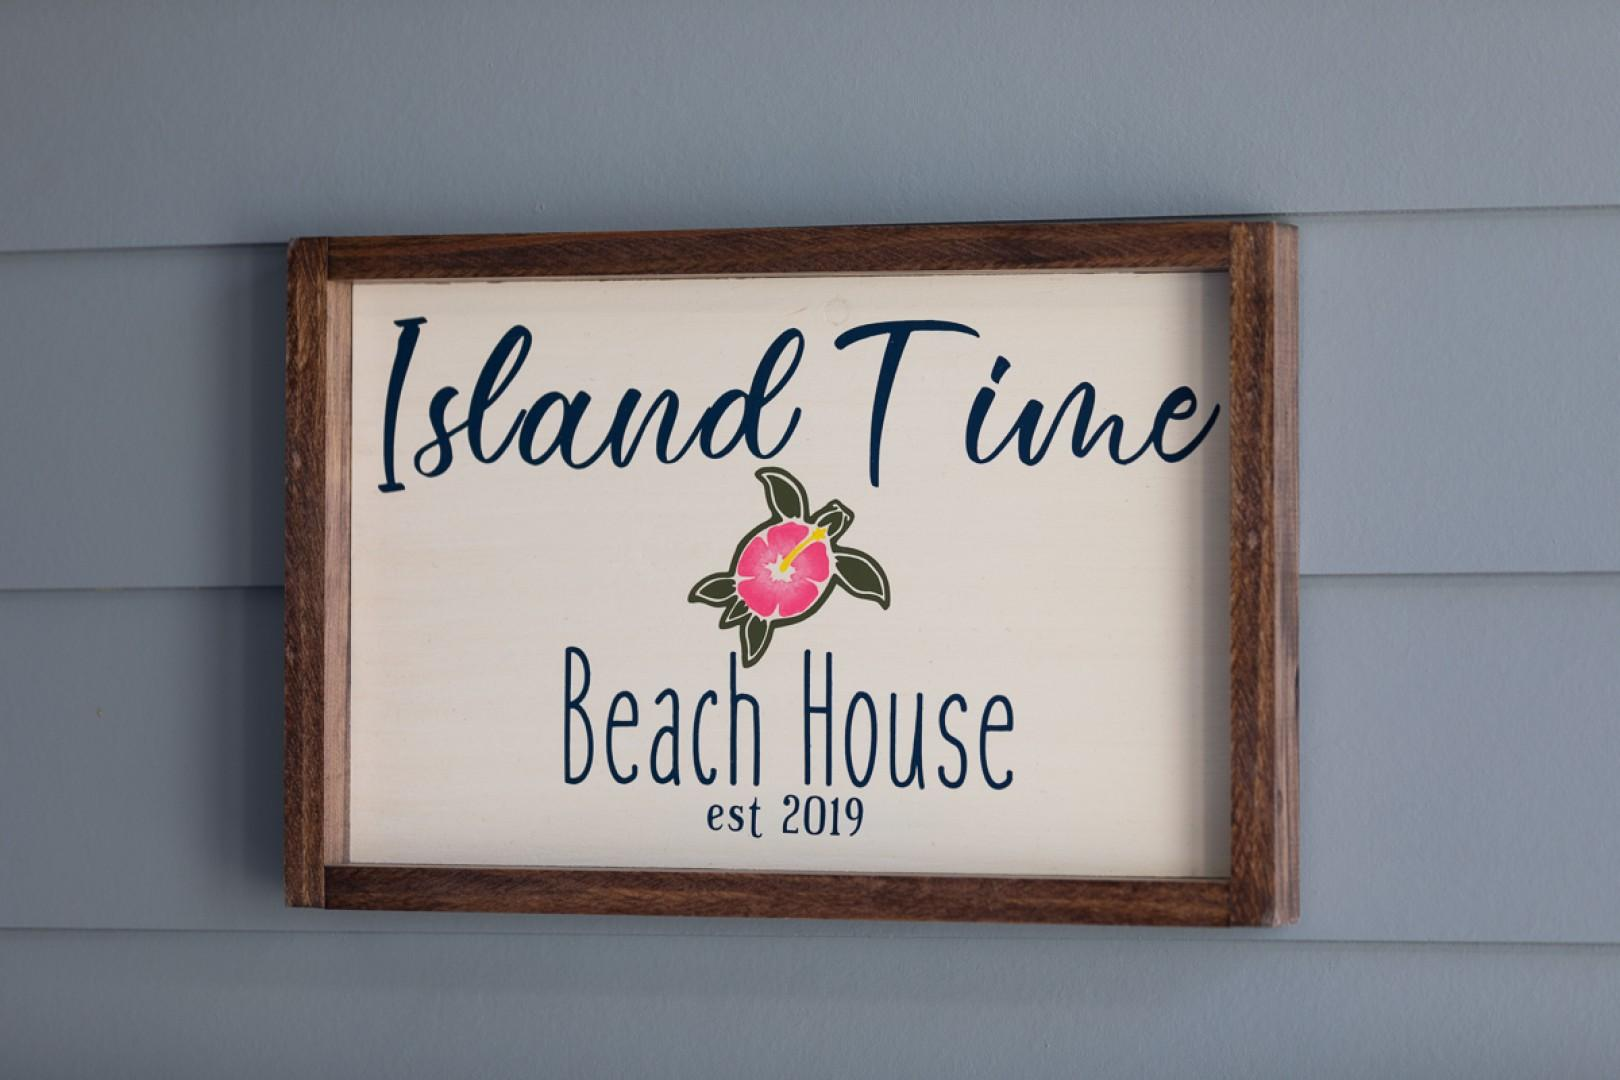 You'll love being on island time!